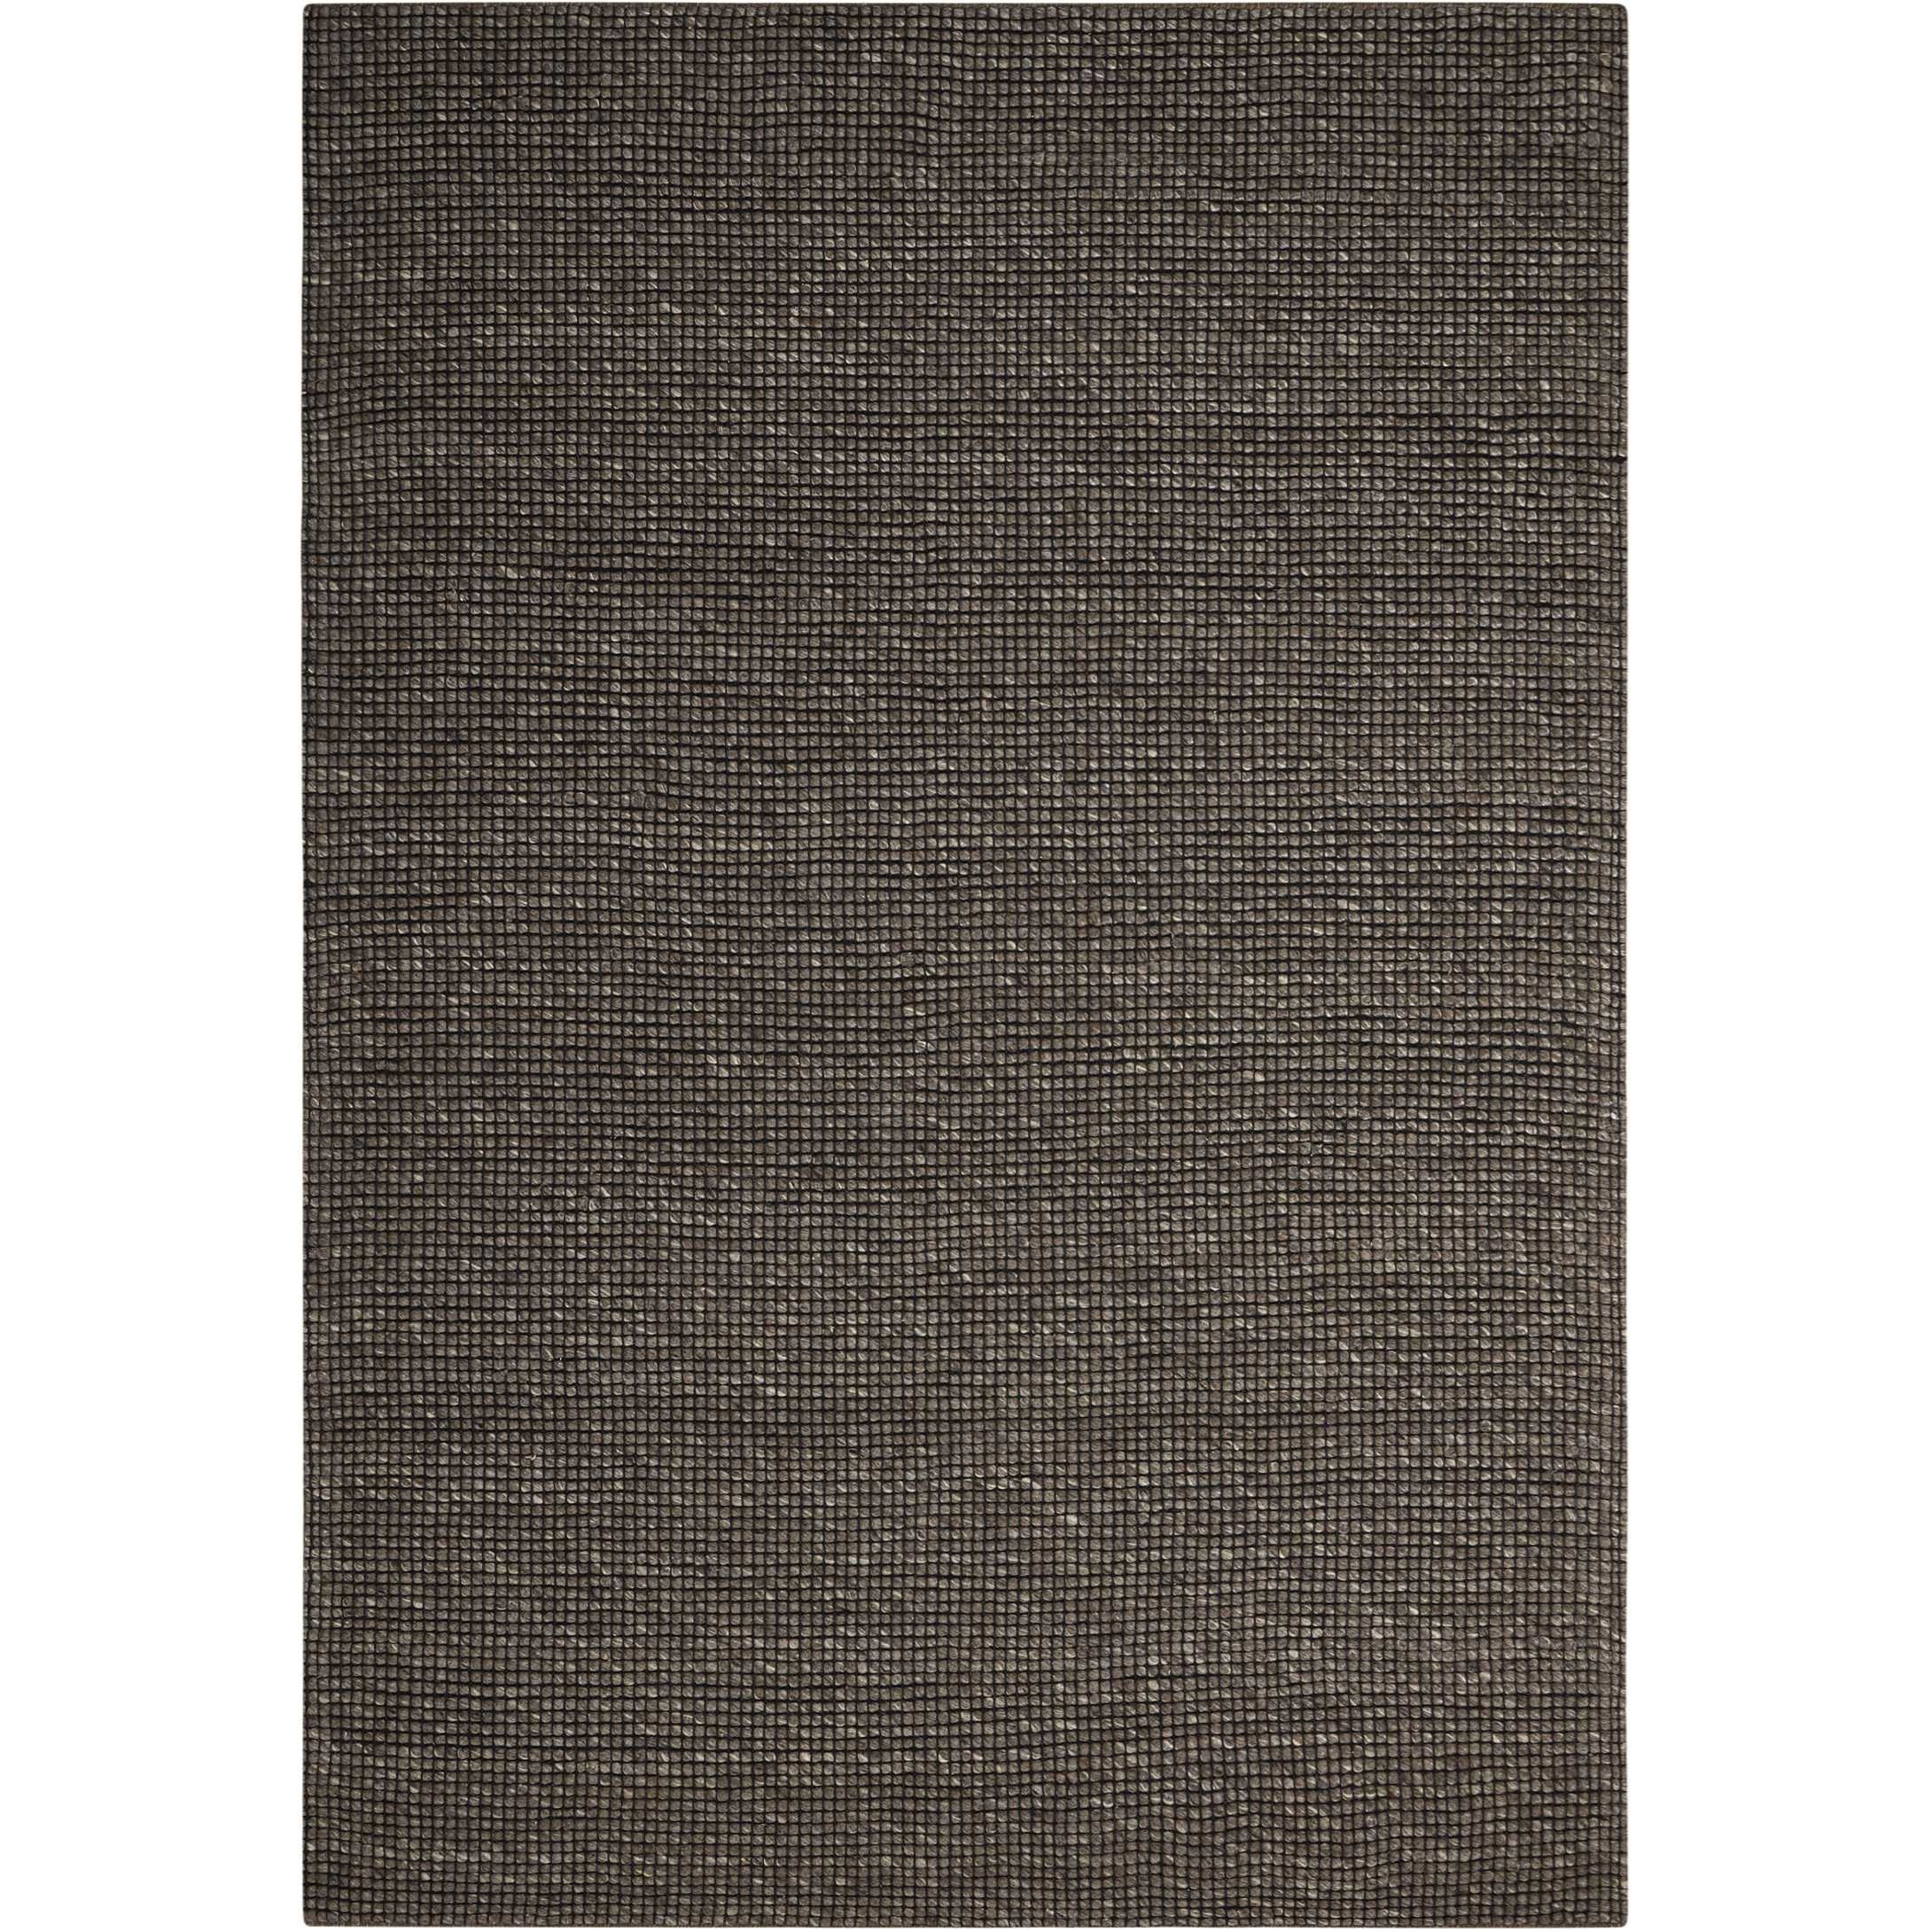 """Lowland 7'9"""" x 9'9"""" Rug by Calvin Klein Home by Nourison at Home Collections Furniture"""